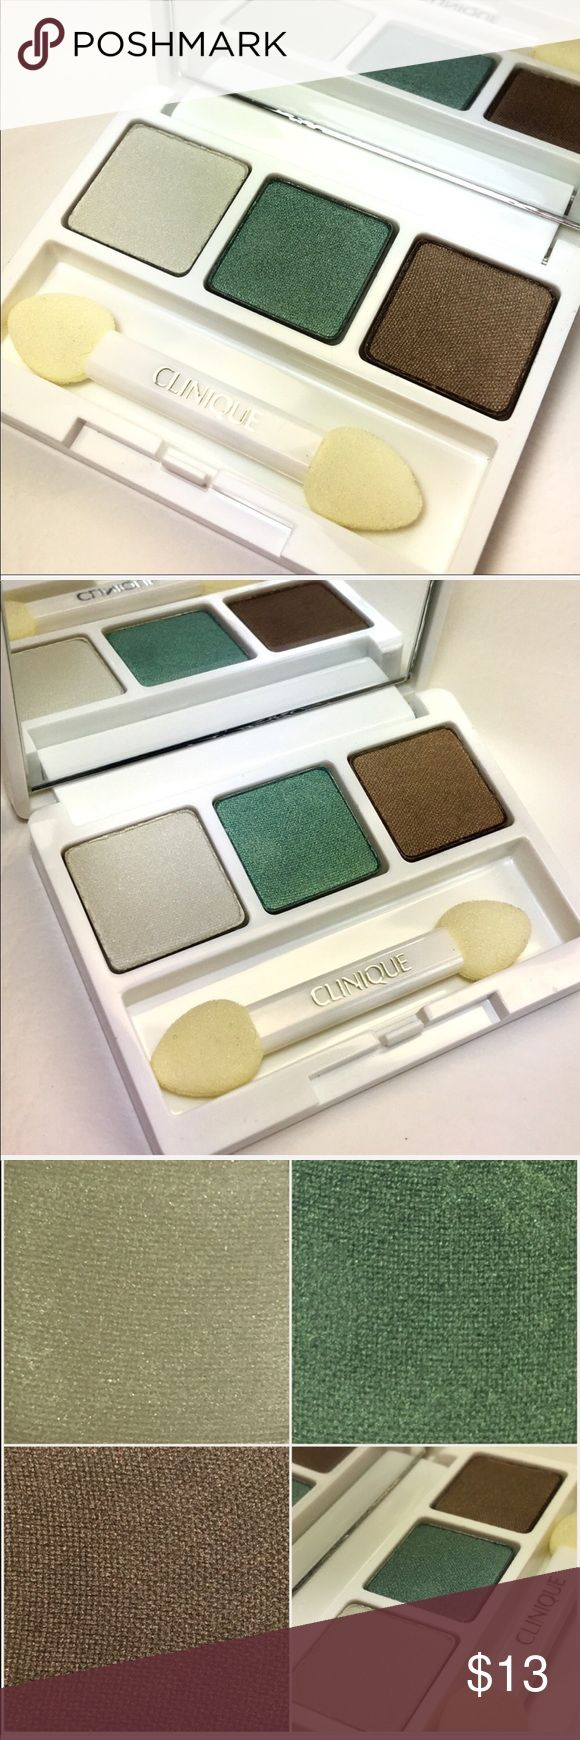 Clinique All About Shadow Trio Set Clinique All About Shadow Trio Set  Brand New Without Tags! Great Stocking Stuffer for the Holidays.   I tried to take as many photos of the pallet to show the color best. The eyeshadow seems to have a very light shimmer to them, very pretty earth tones.   Pallet Colors:  - 08 Olive In MY Martin  - 1X Pacific Coast - 08 Wave After Wave   .07 oz. / 1.9g  Tags: Makeup, Cosmetic, Eye Makeup, Eyeshadows, Eyeshadow, Glitter, Glam, Pallet Clinique Makeup